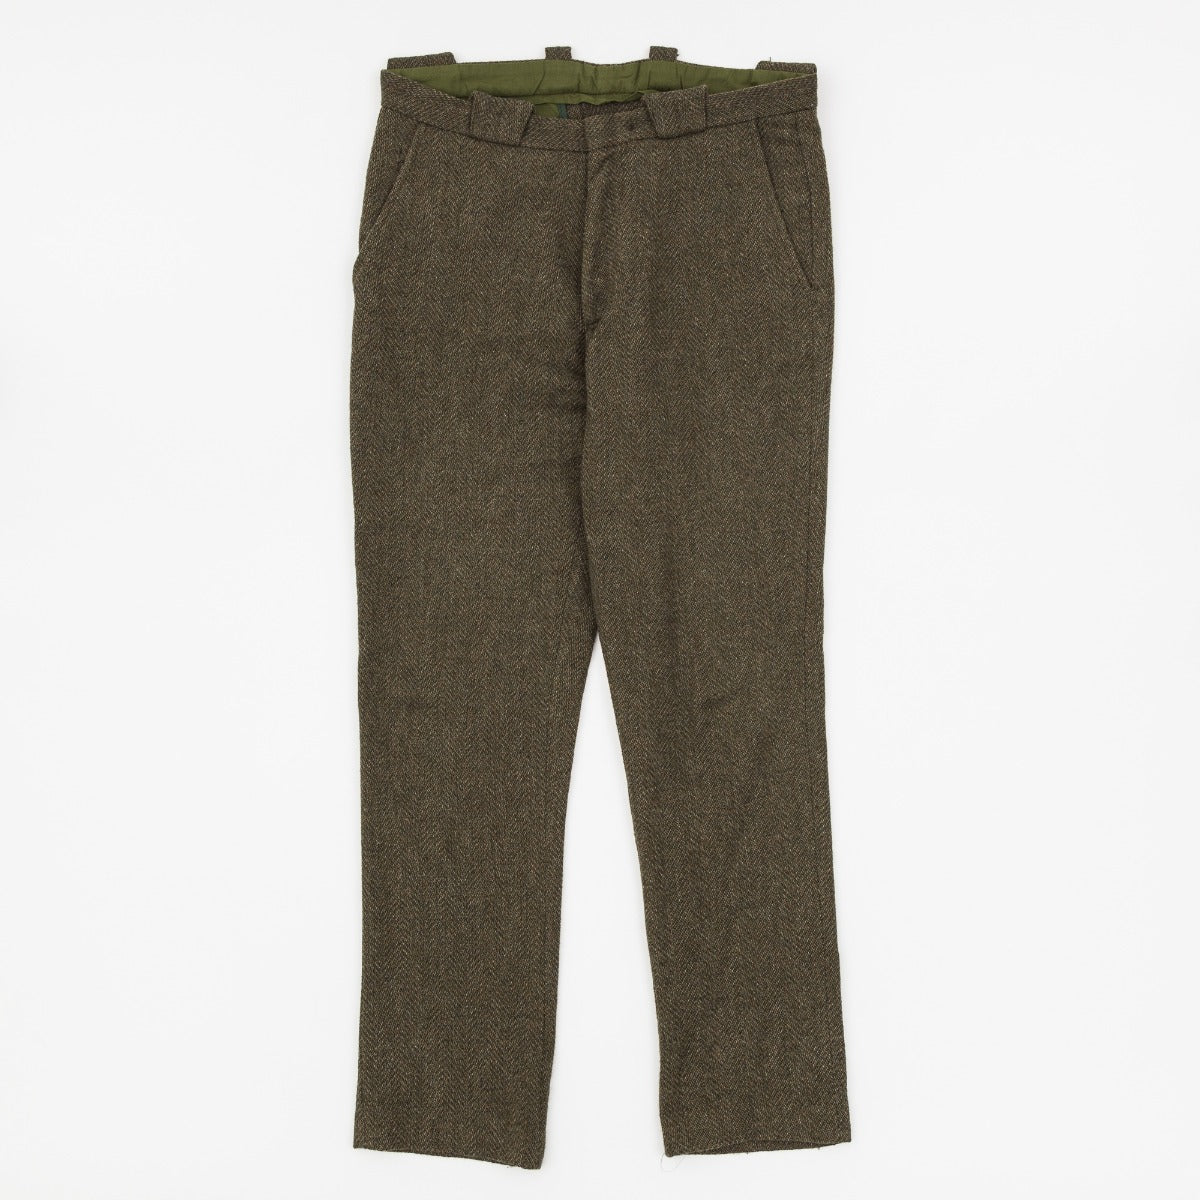 Nigel Cabourn Fox Flannel Suit Trousers